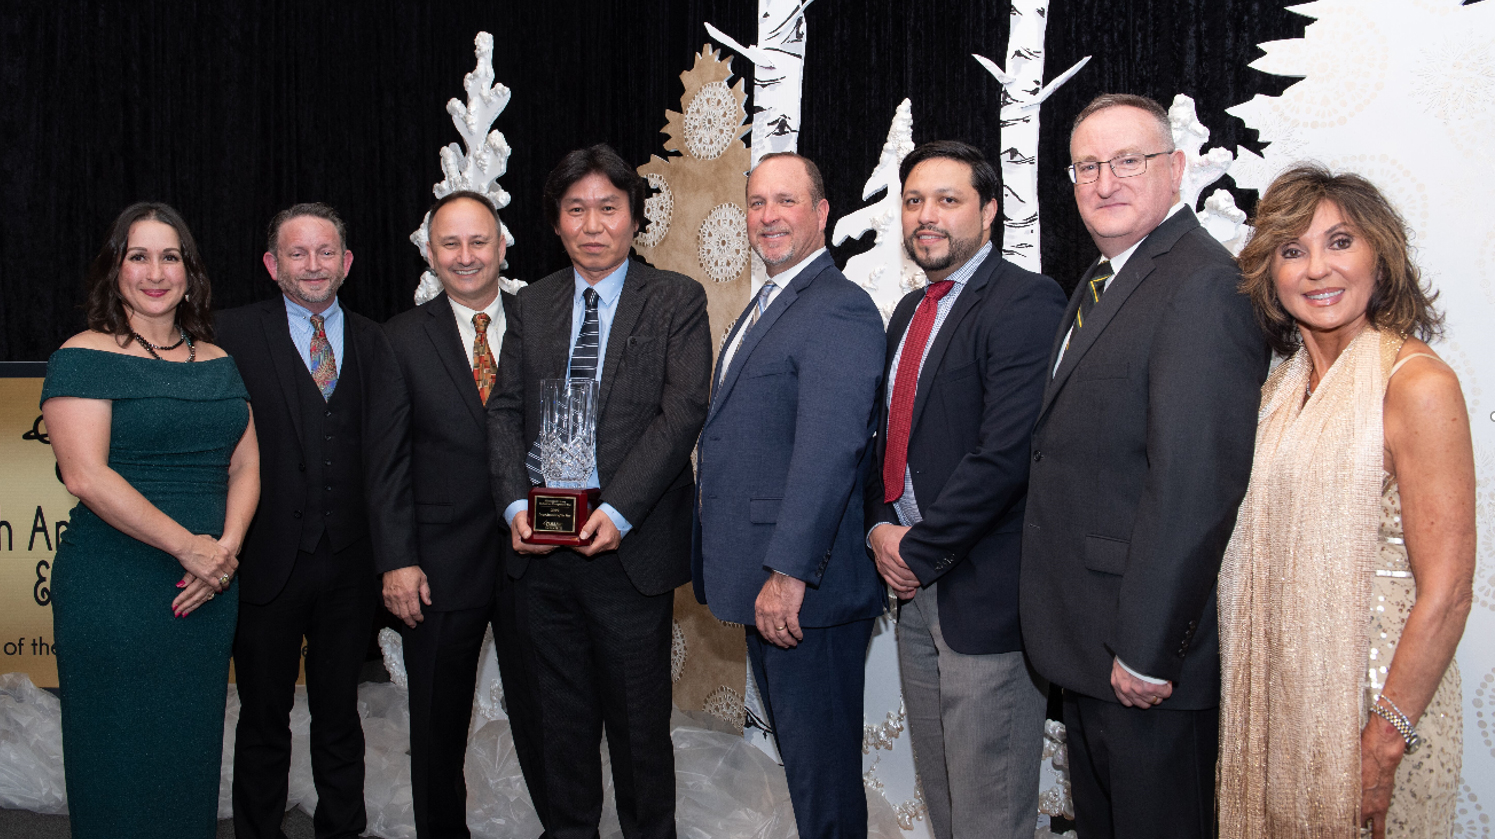 From left to right: Donna Connelly – Pearland chairman, Mark Smith – Pearland Chairman Elect, Lawrence Rominger – VP QHSE, Manabu Saga – President, Jerry Jones – Procurement Manager, Guillermo Suarez – NUB Project Manager, Joseph Lee – Facilities Manager, Carol Artz-Bucek – President and CEO of Pearland Chamber of Commerce